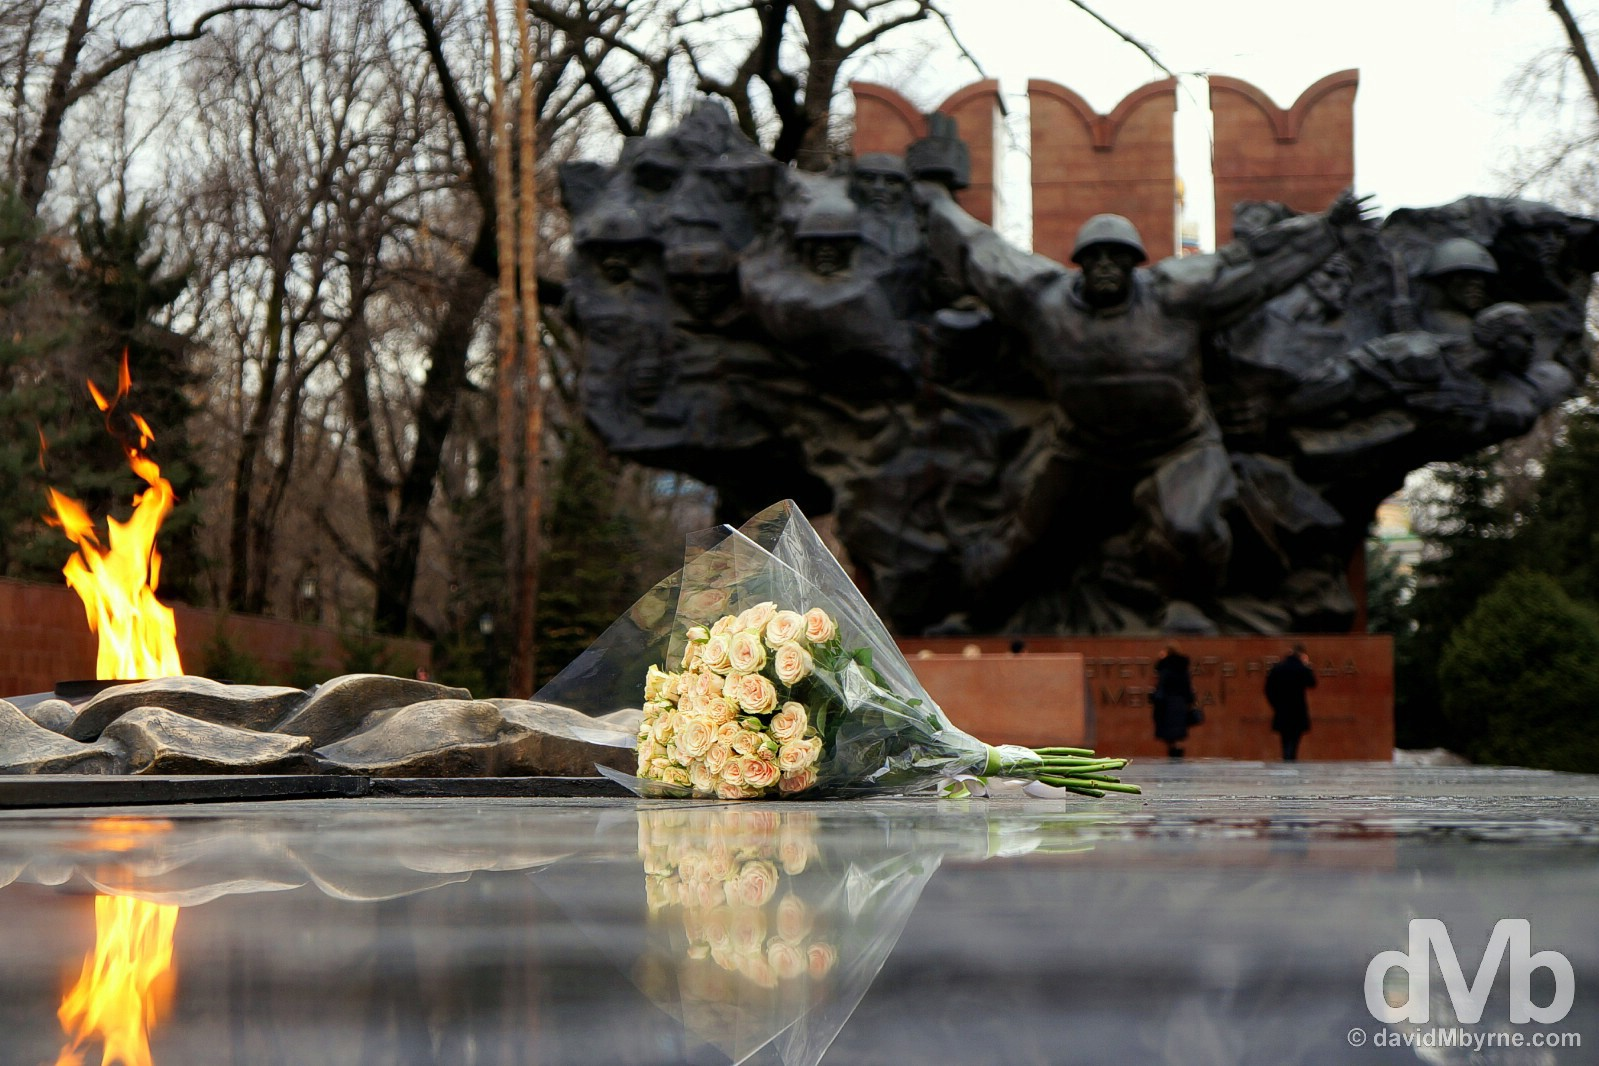 The War Memorial in Panfilov Park, Almaty, Kazakhstan. February 13, 2015.